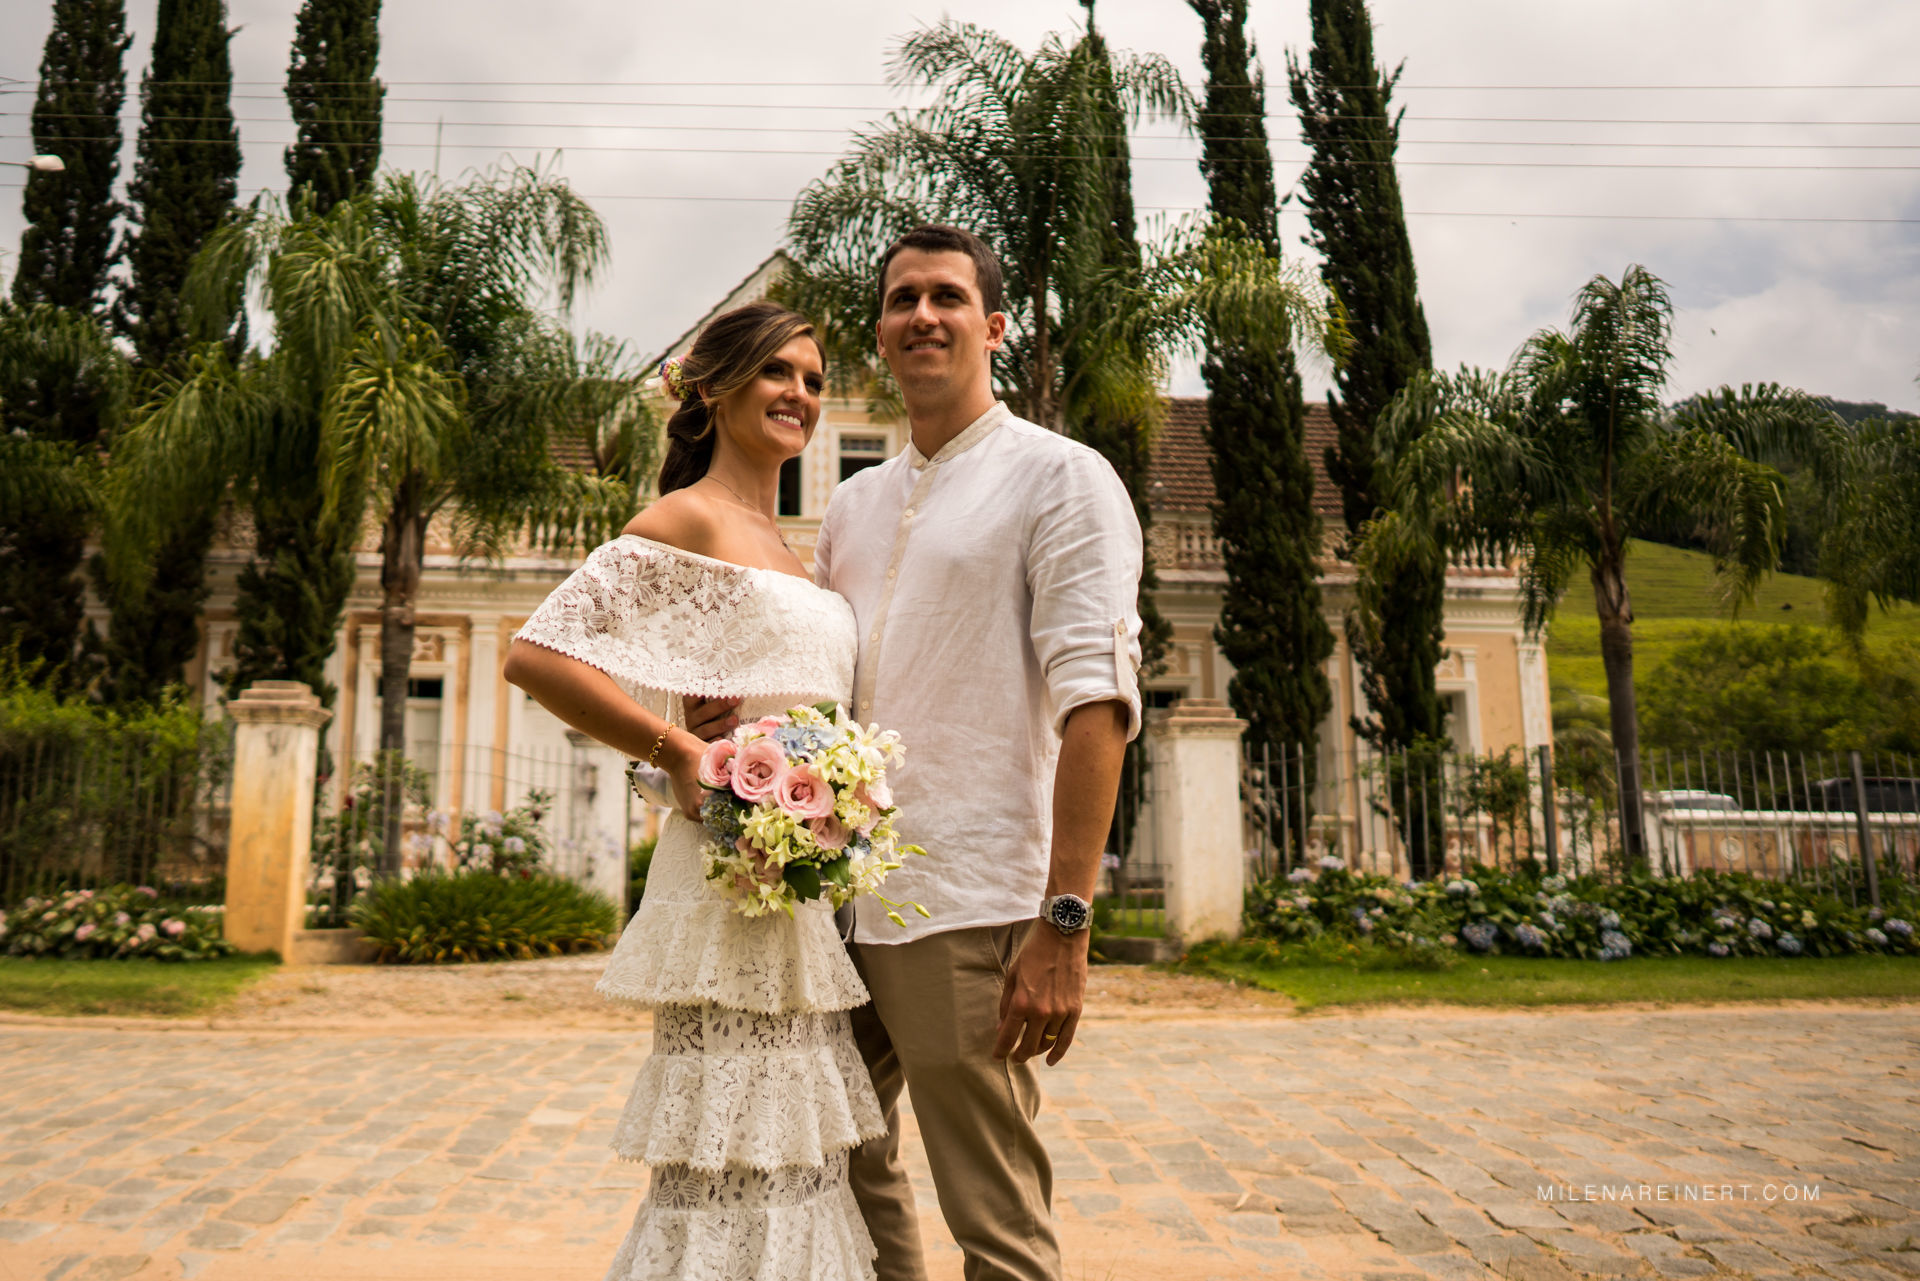 Mini Wedding | Thais + Daniel | Florianópolis